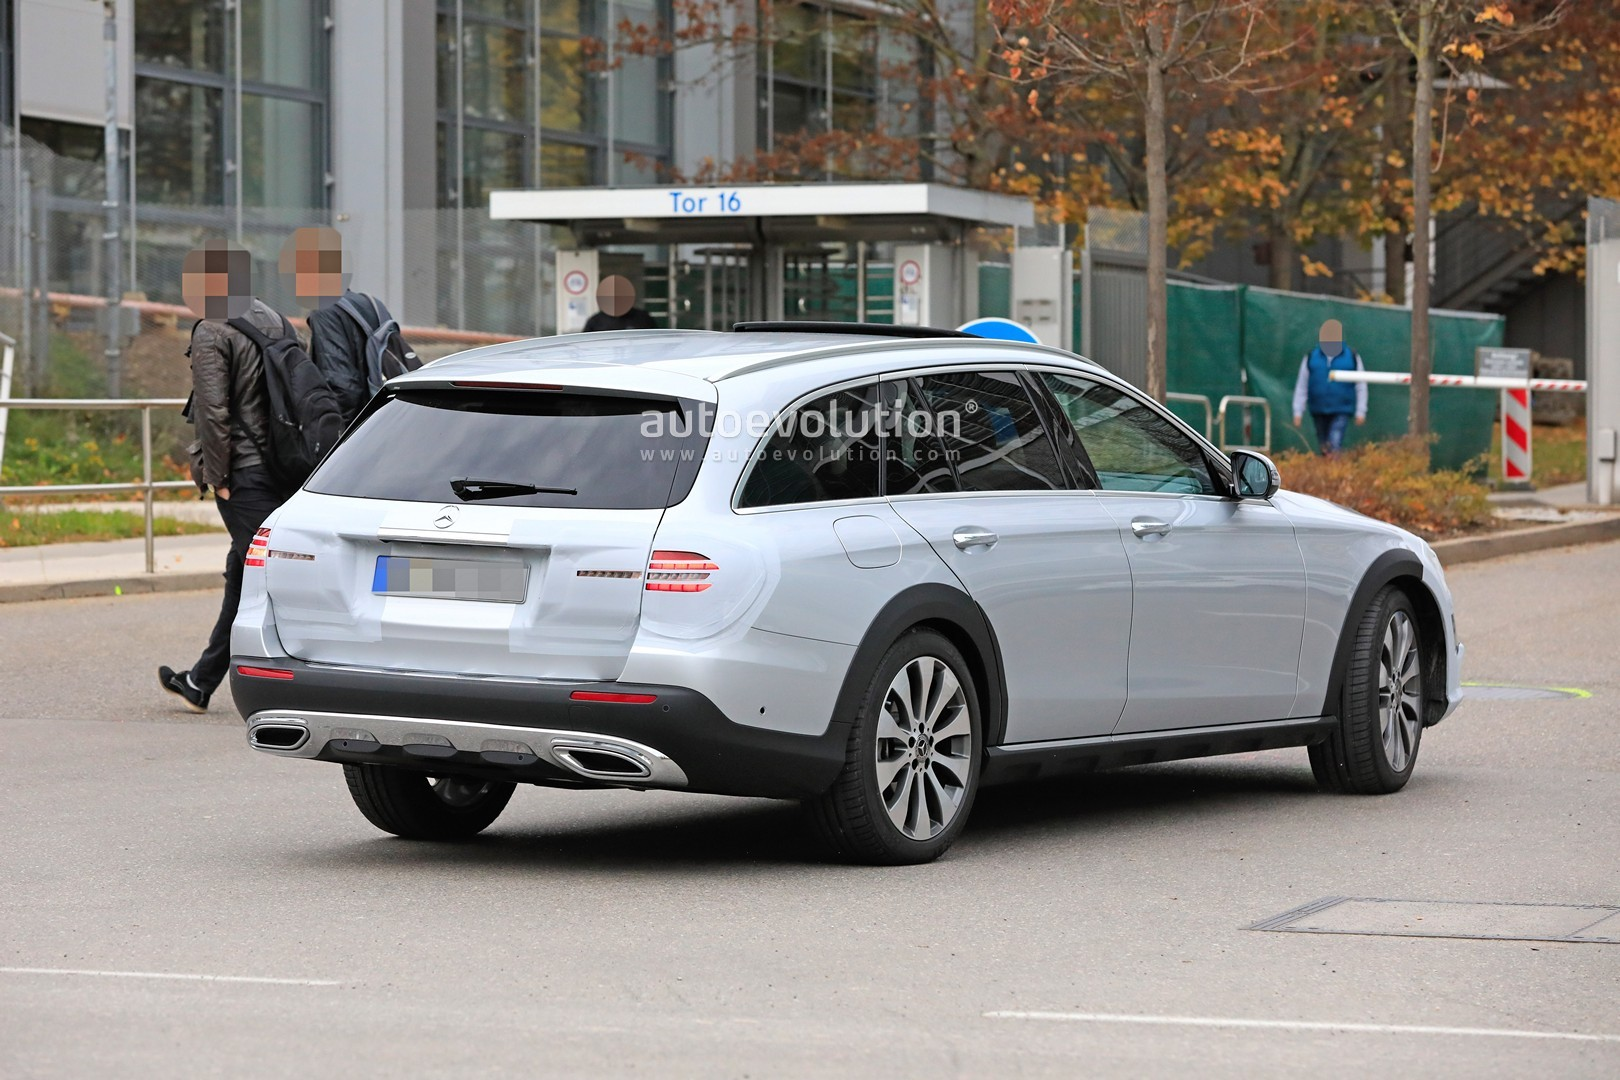 2020 mercedes-benz e-class spied  is getting a new face inspired by cls-class